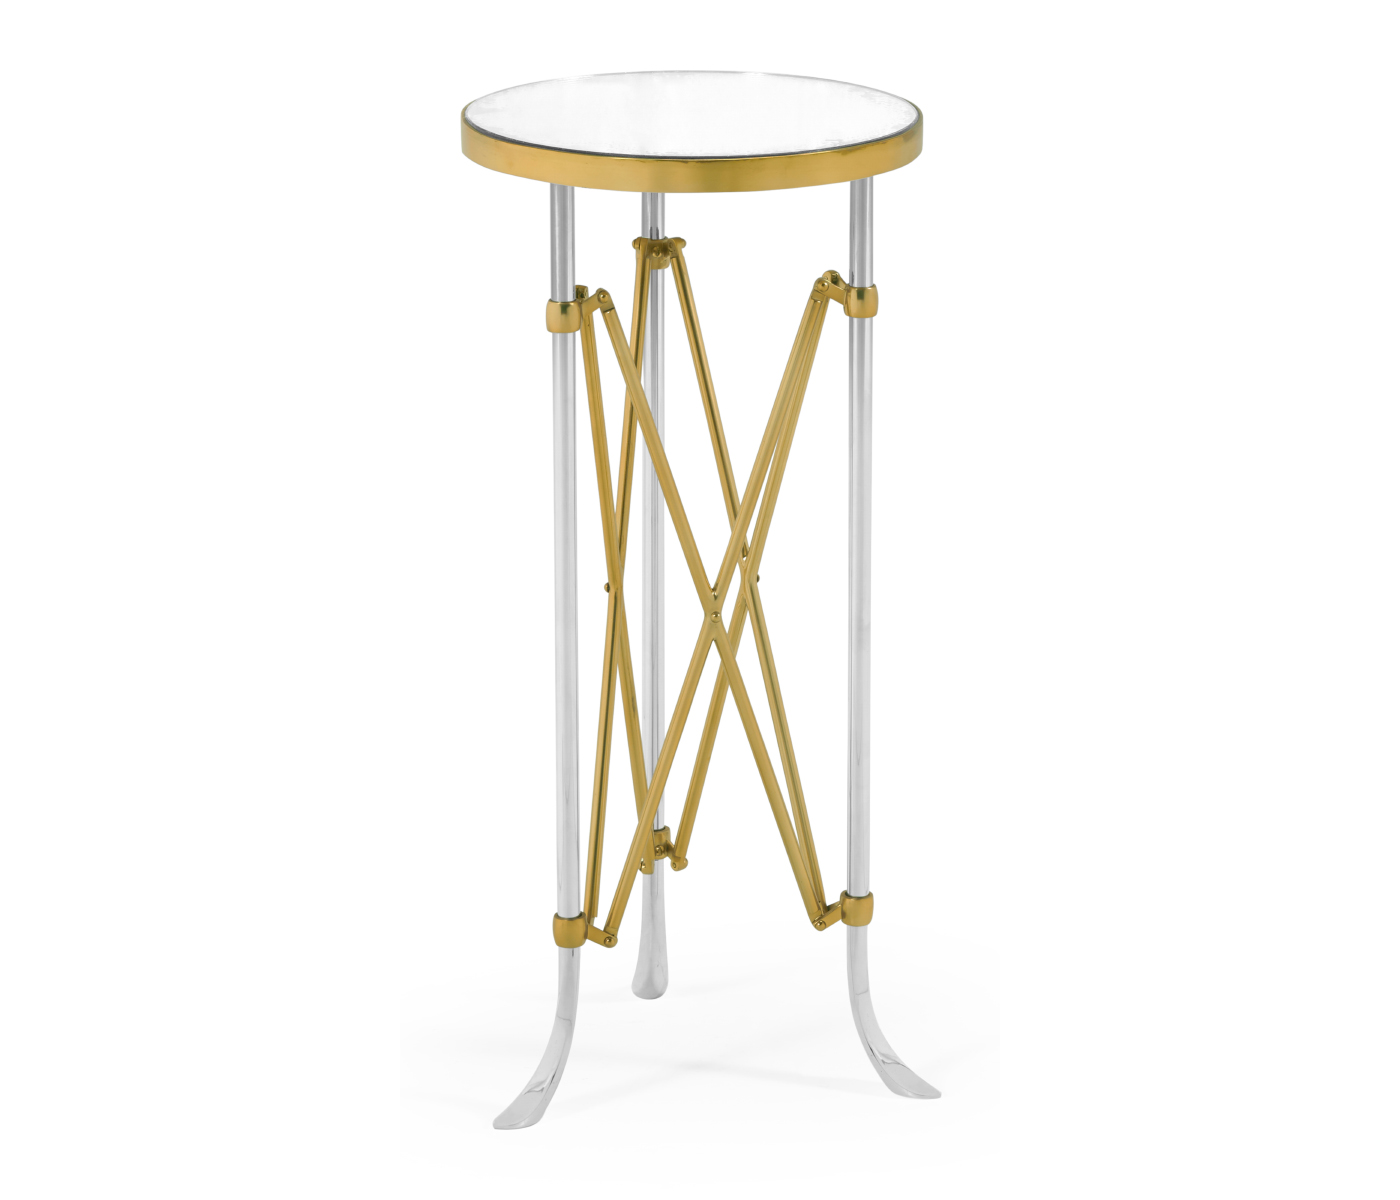 Enjoyable Small Round Antique Satin Gold Brass Antique Glass Vanity Gmtry Best Dining Table And Chair Ideas Images Gmtryco